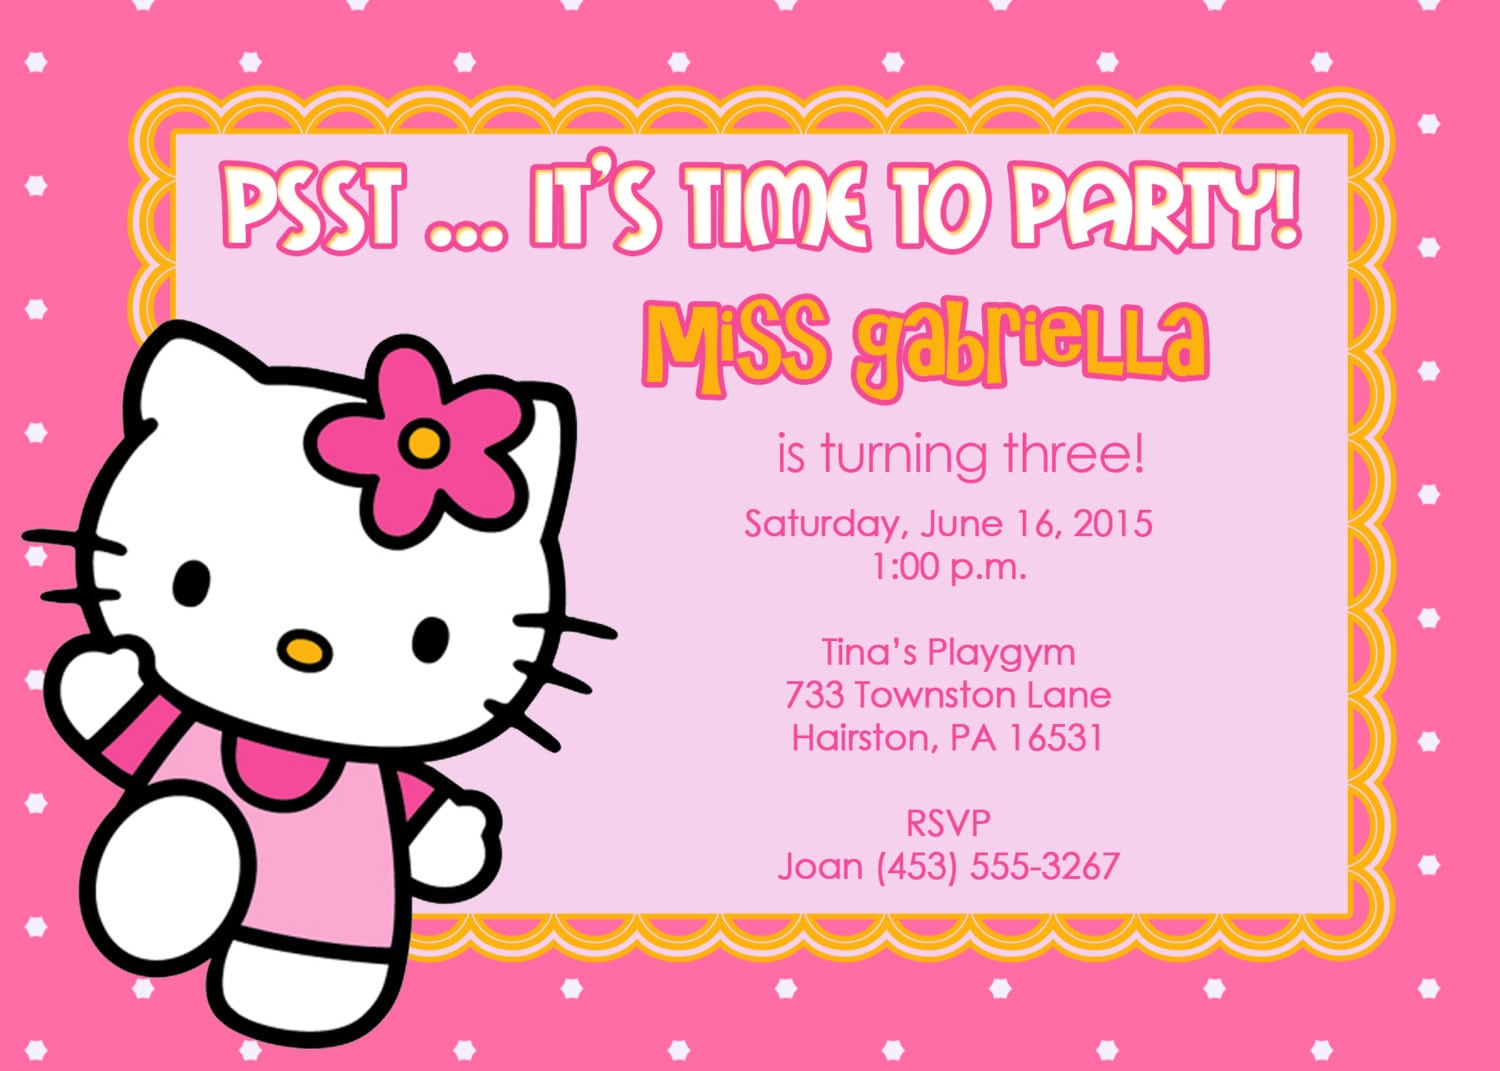 Passion Party Invitation Wording is nice invitations layout